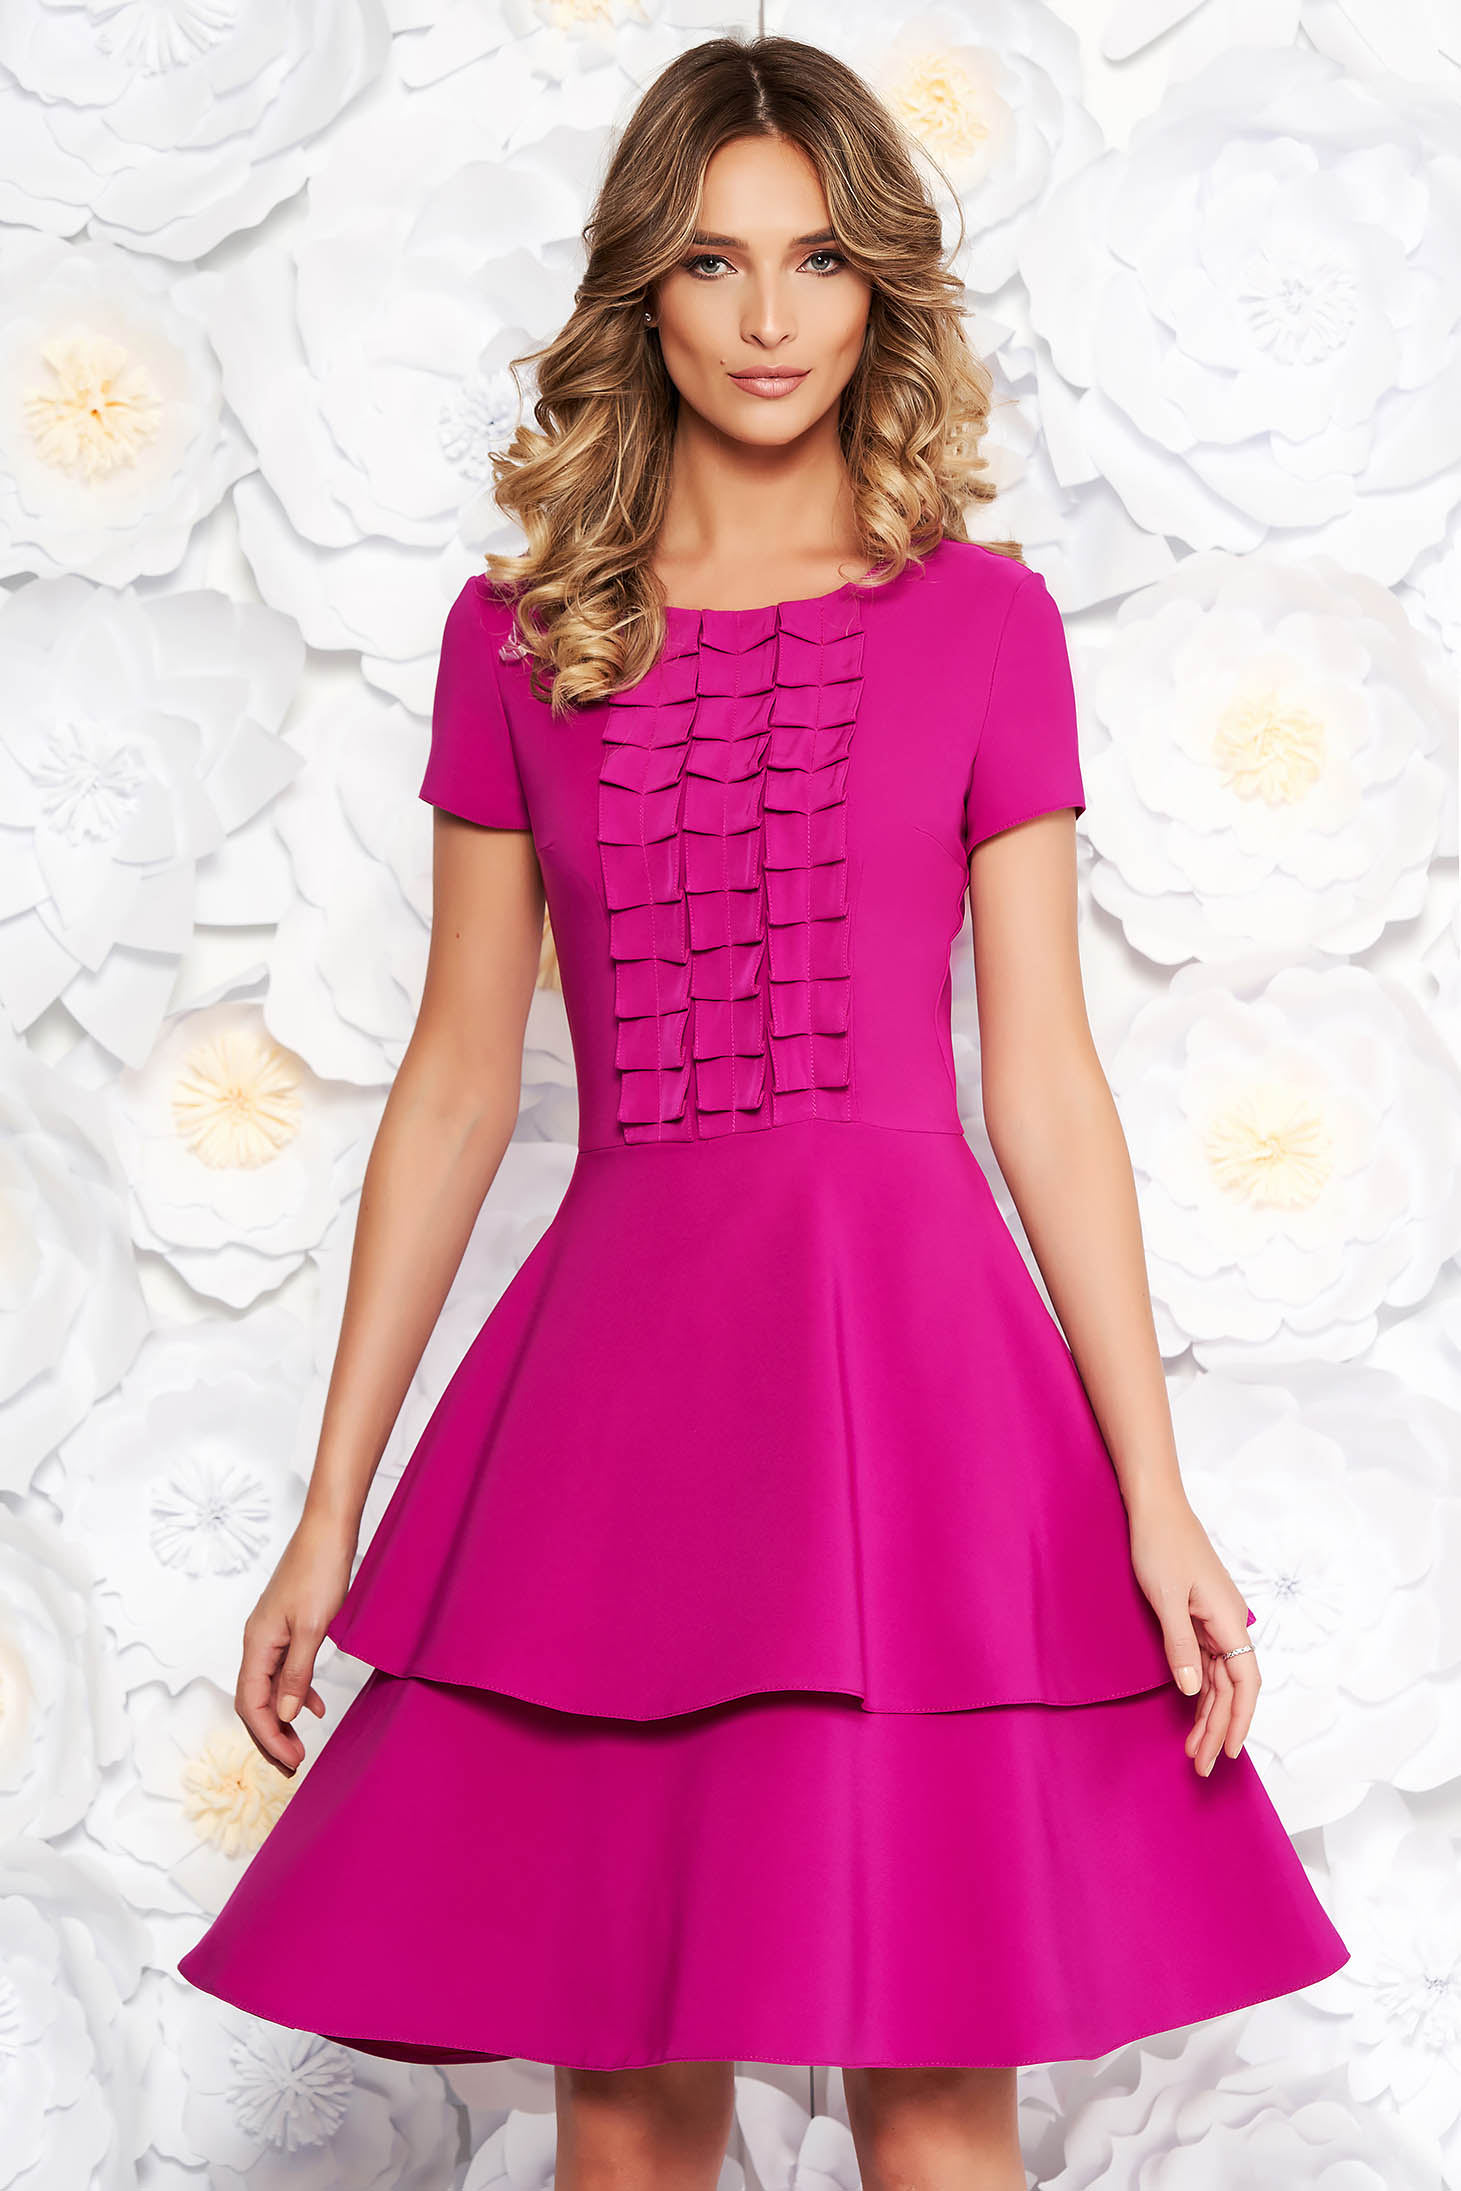 LaDonna fuchsia daily cloche dress slightly elastic fabric short sleeves with ruffle details